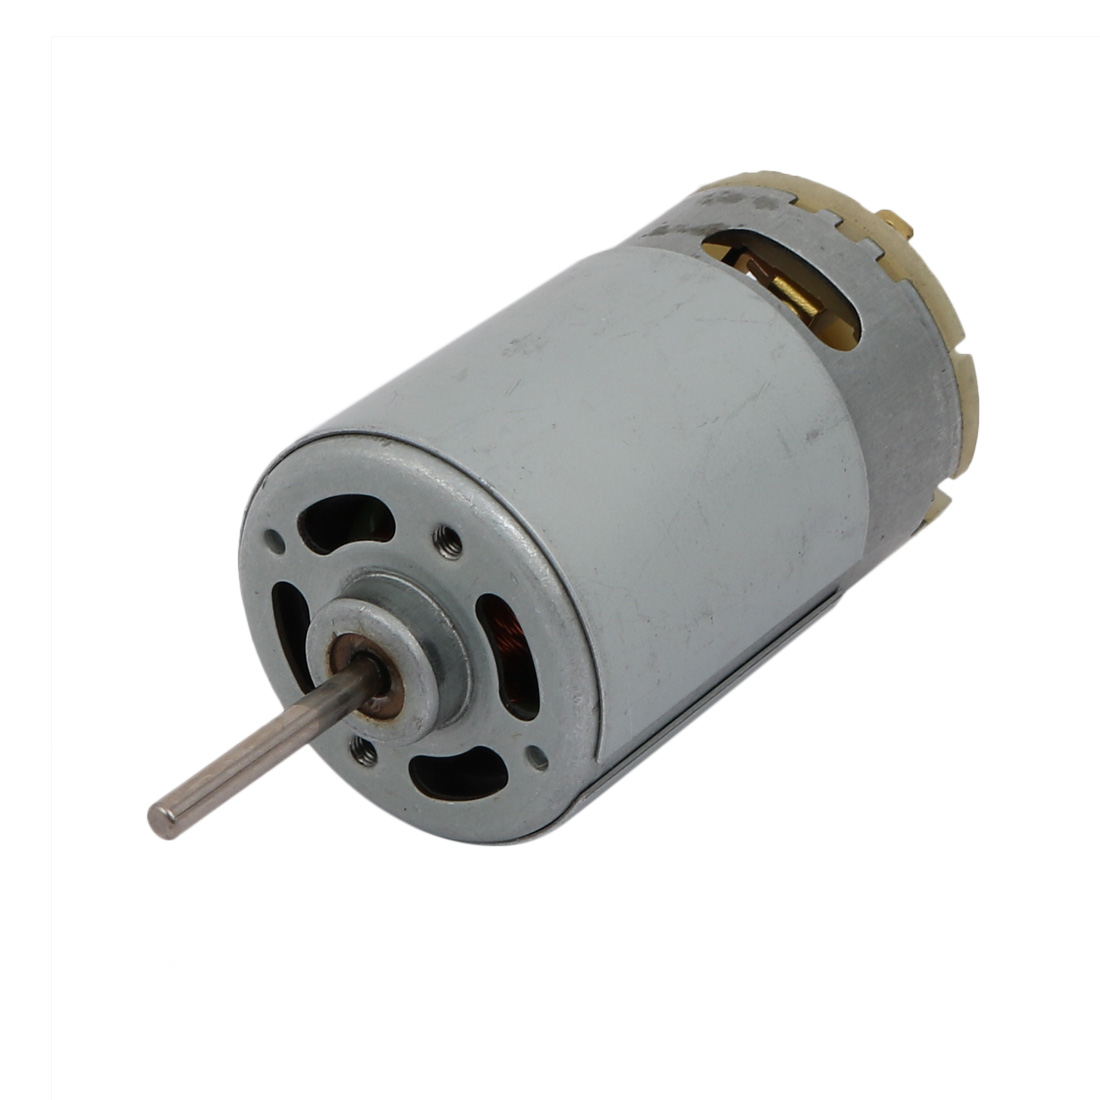 RS555PC DC24V 4800RPM 3.2mm Dia Shaft Brushed DC Motor for DIY Electric Projects